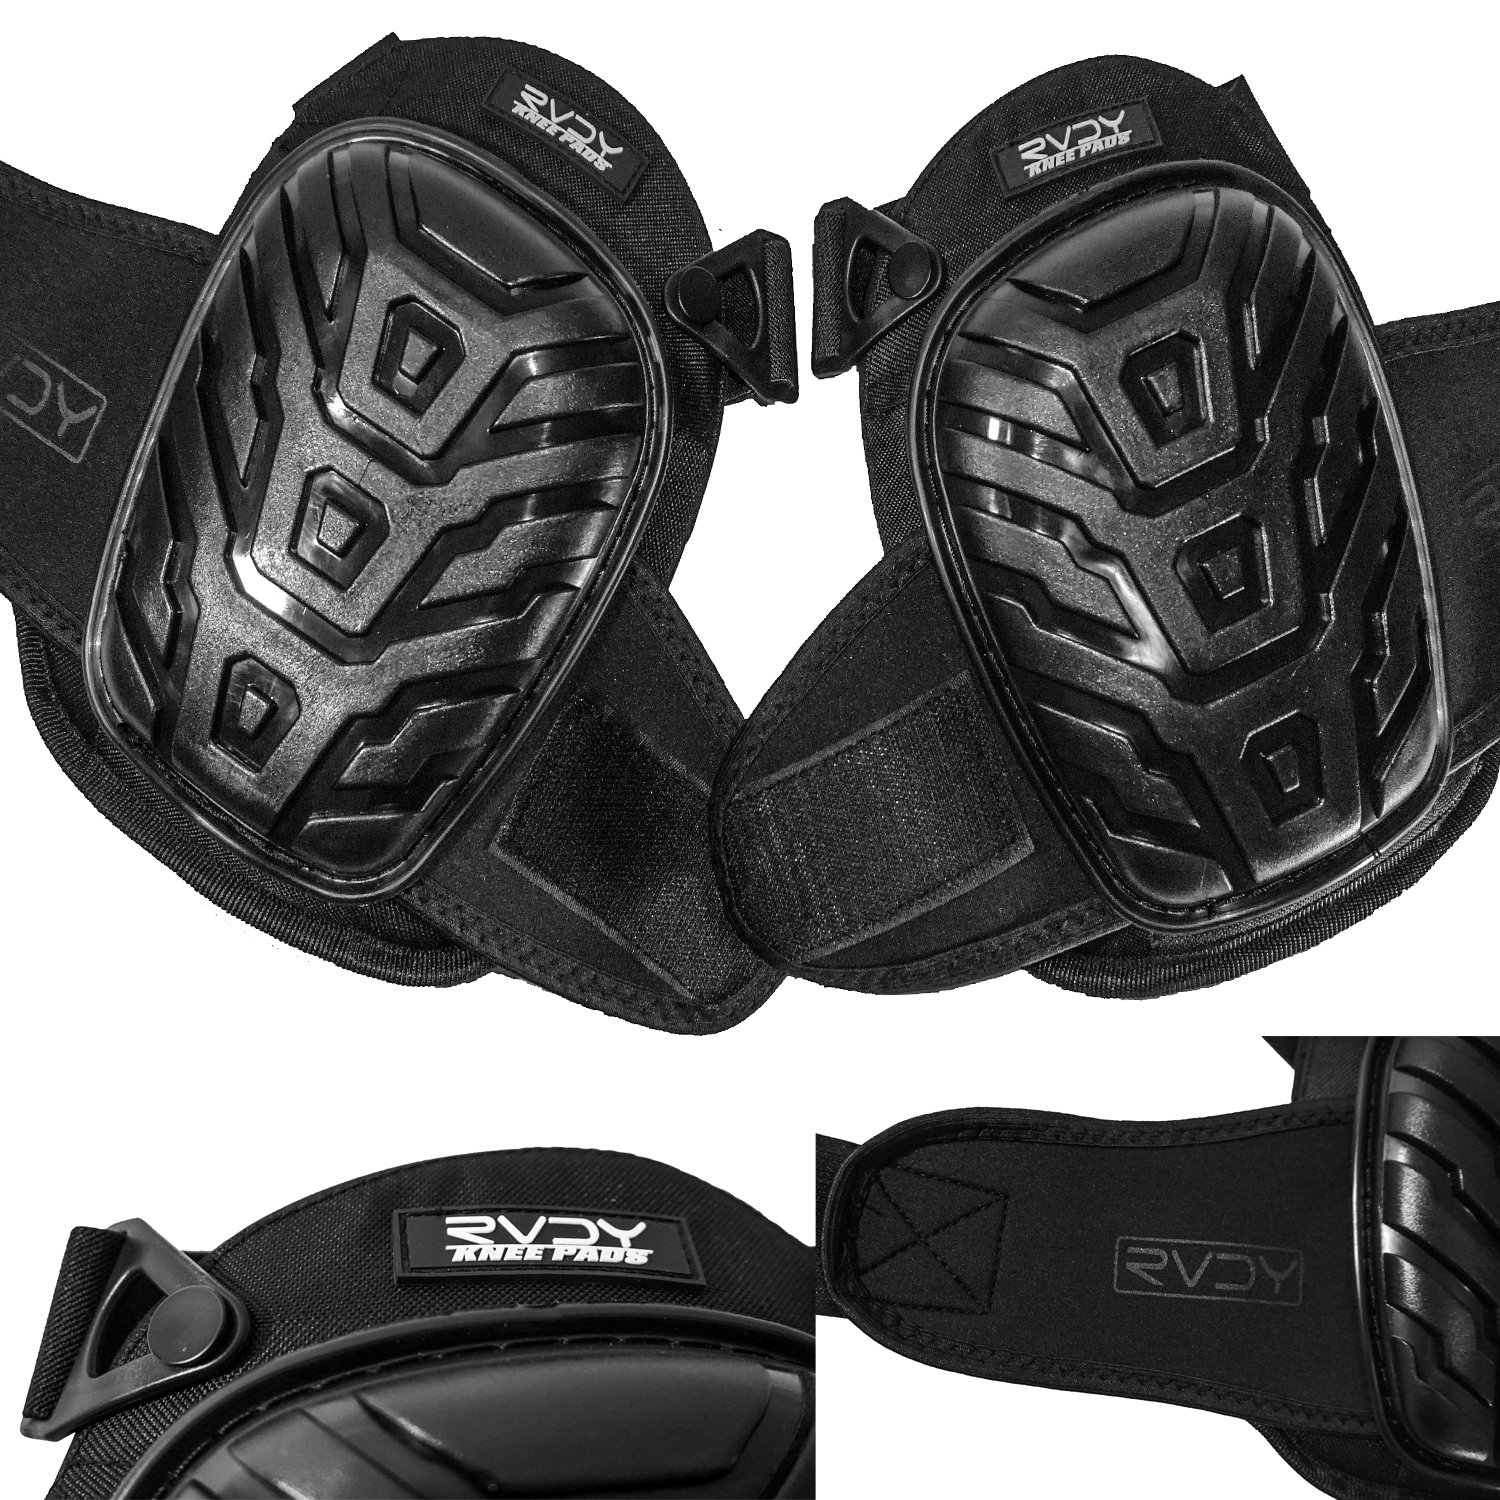 Professional Knee Pads By RVDY Ergonomically Designed Knee Protection With Comfortable Gel Cushion & Soft EVA Foam Padding –Adjustable Knee Guard Made With 600D Breathable Polyester Fabric